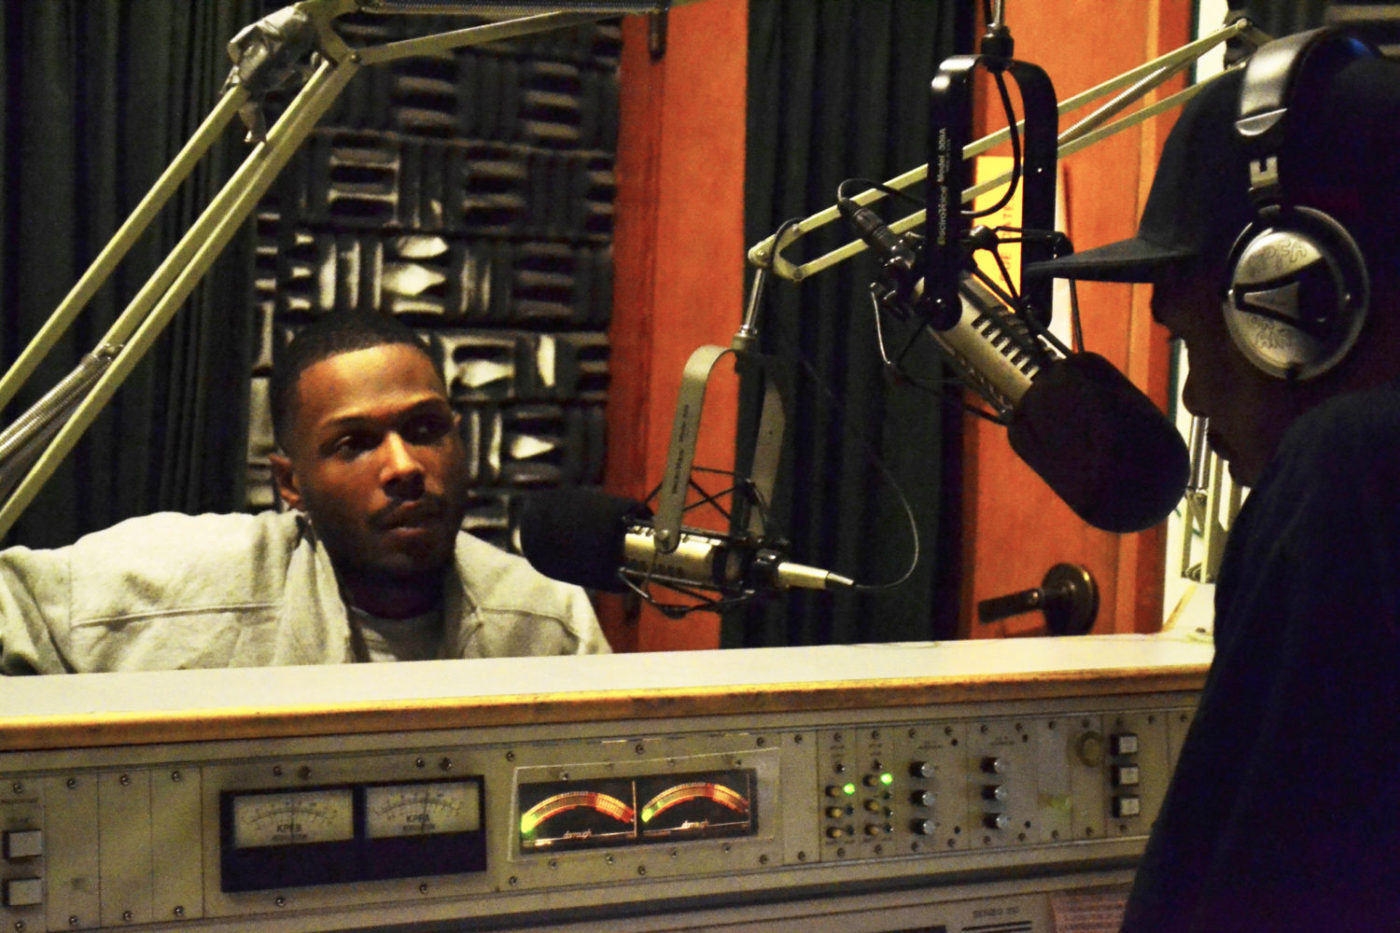 Malcolm-JR-broadcasting-Block-Report-Friday-Night-Vibe-KPFA-120311-1400x933, Pacifica Radio: Let's talk about the debt, Local News & Views